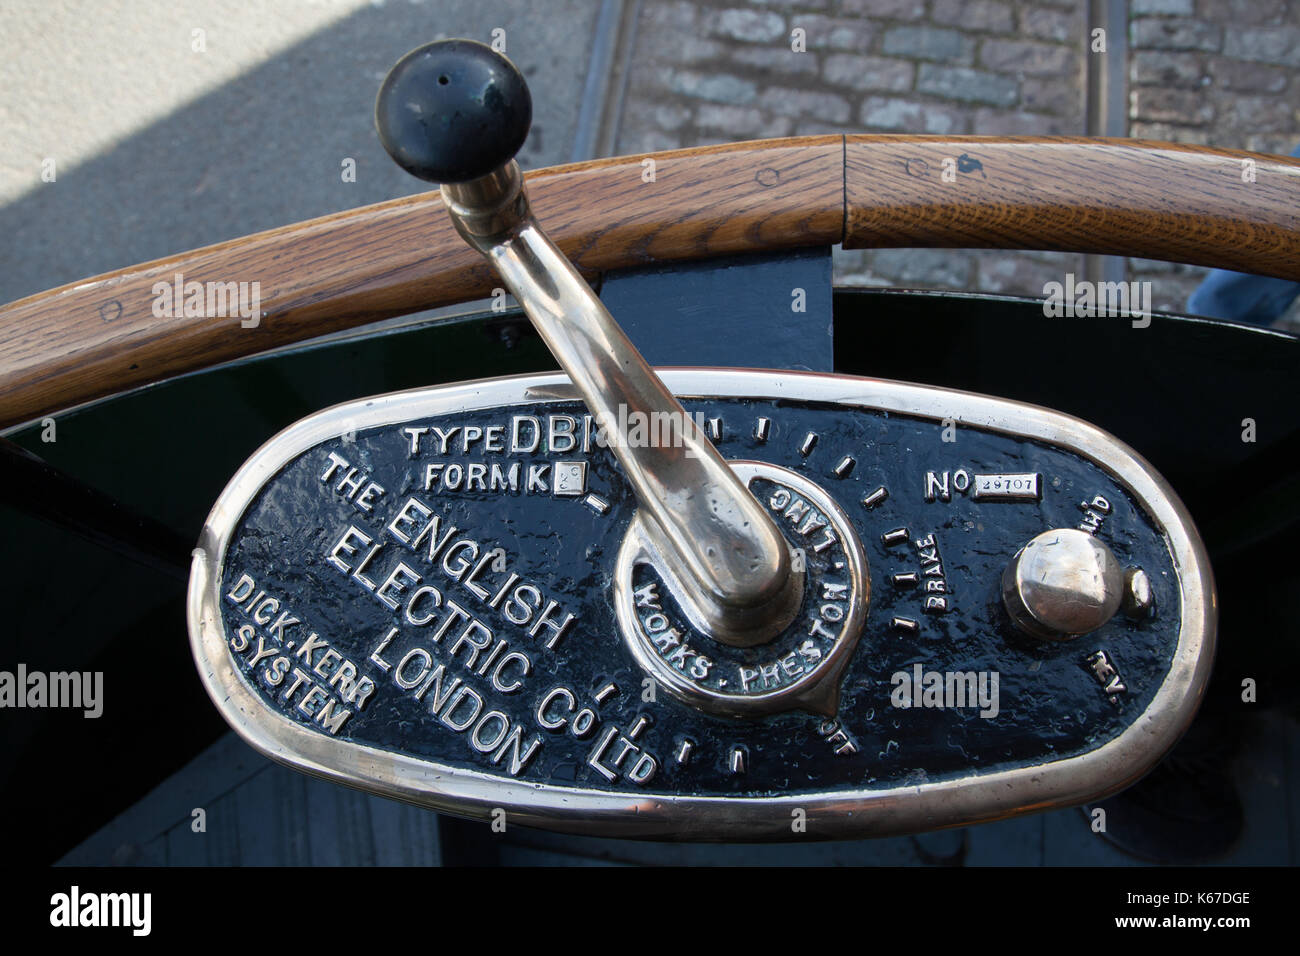 ?Vintage Electric Bus CVontrol Lever - Stock Image